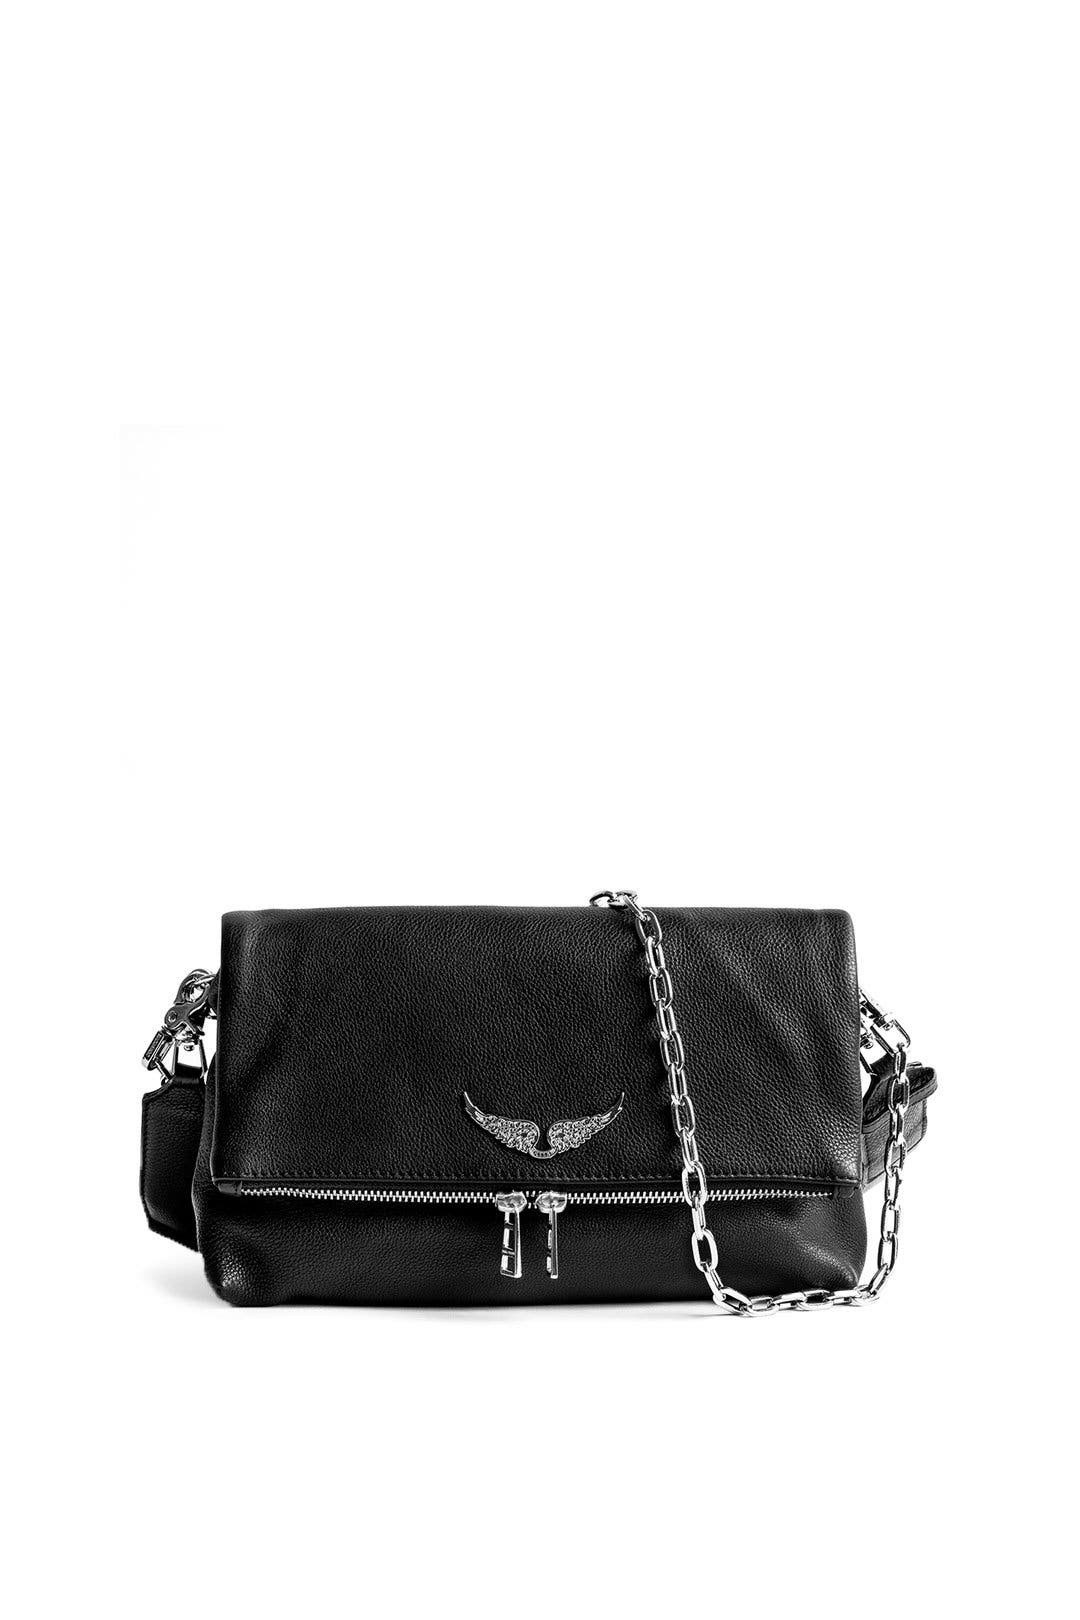 Noir Rocky Grained Bag By Zadig Voltaire Handbags For 65 Rent The Runway